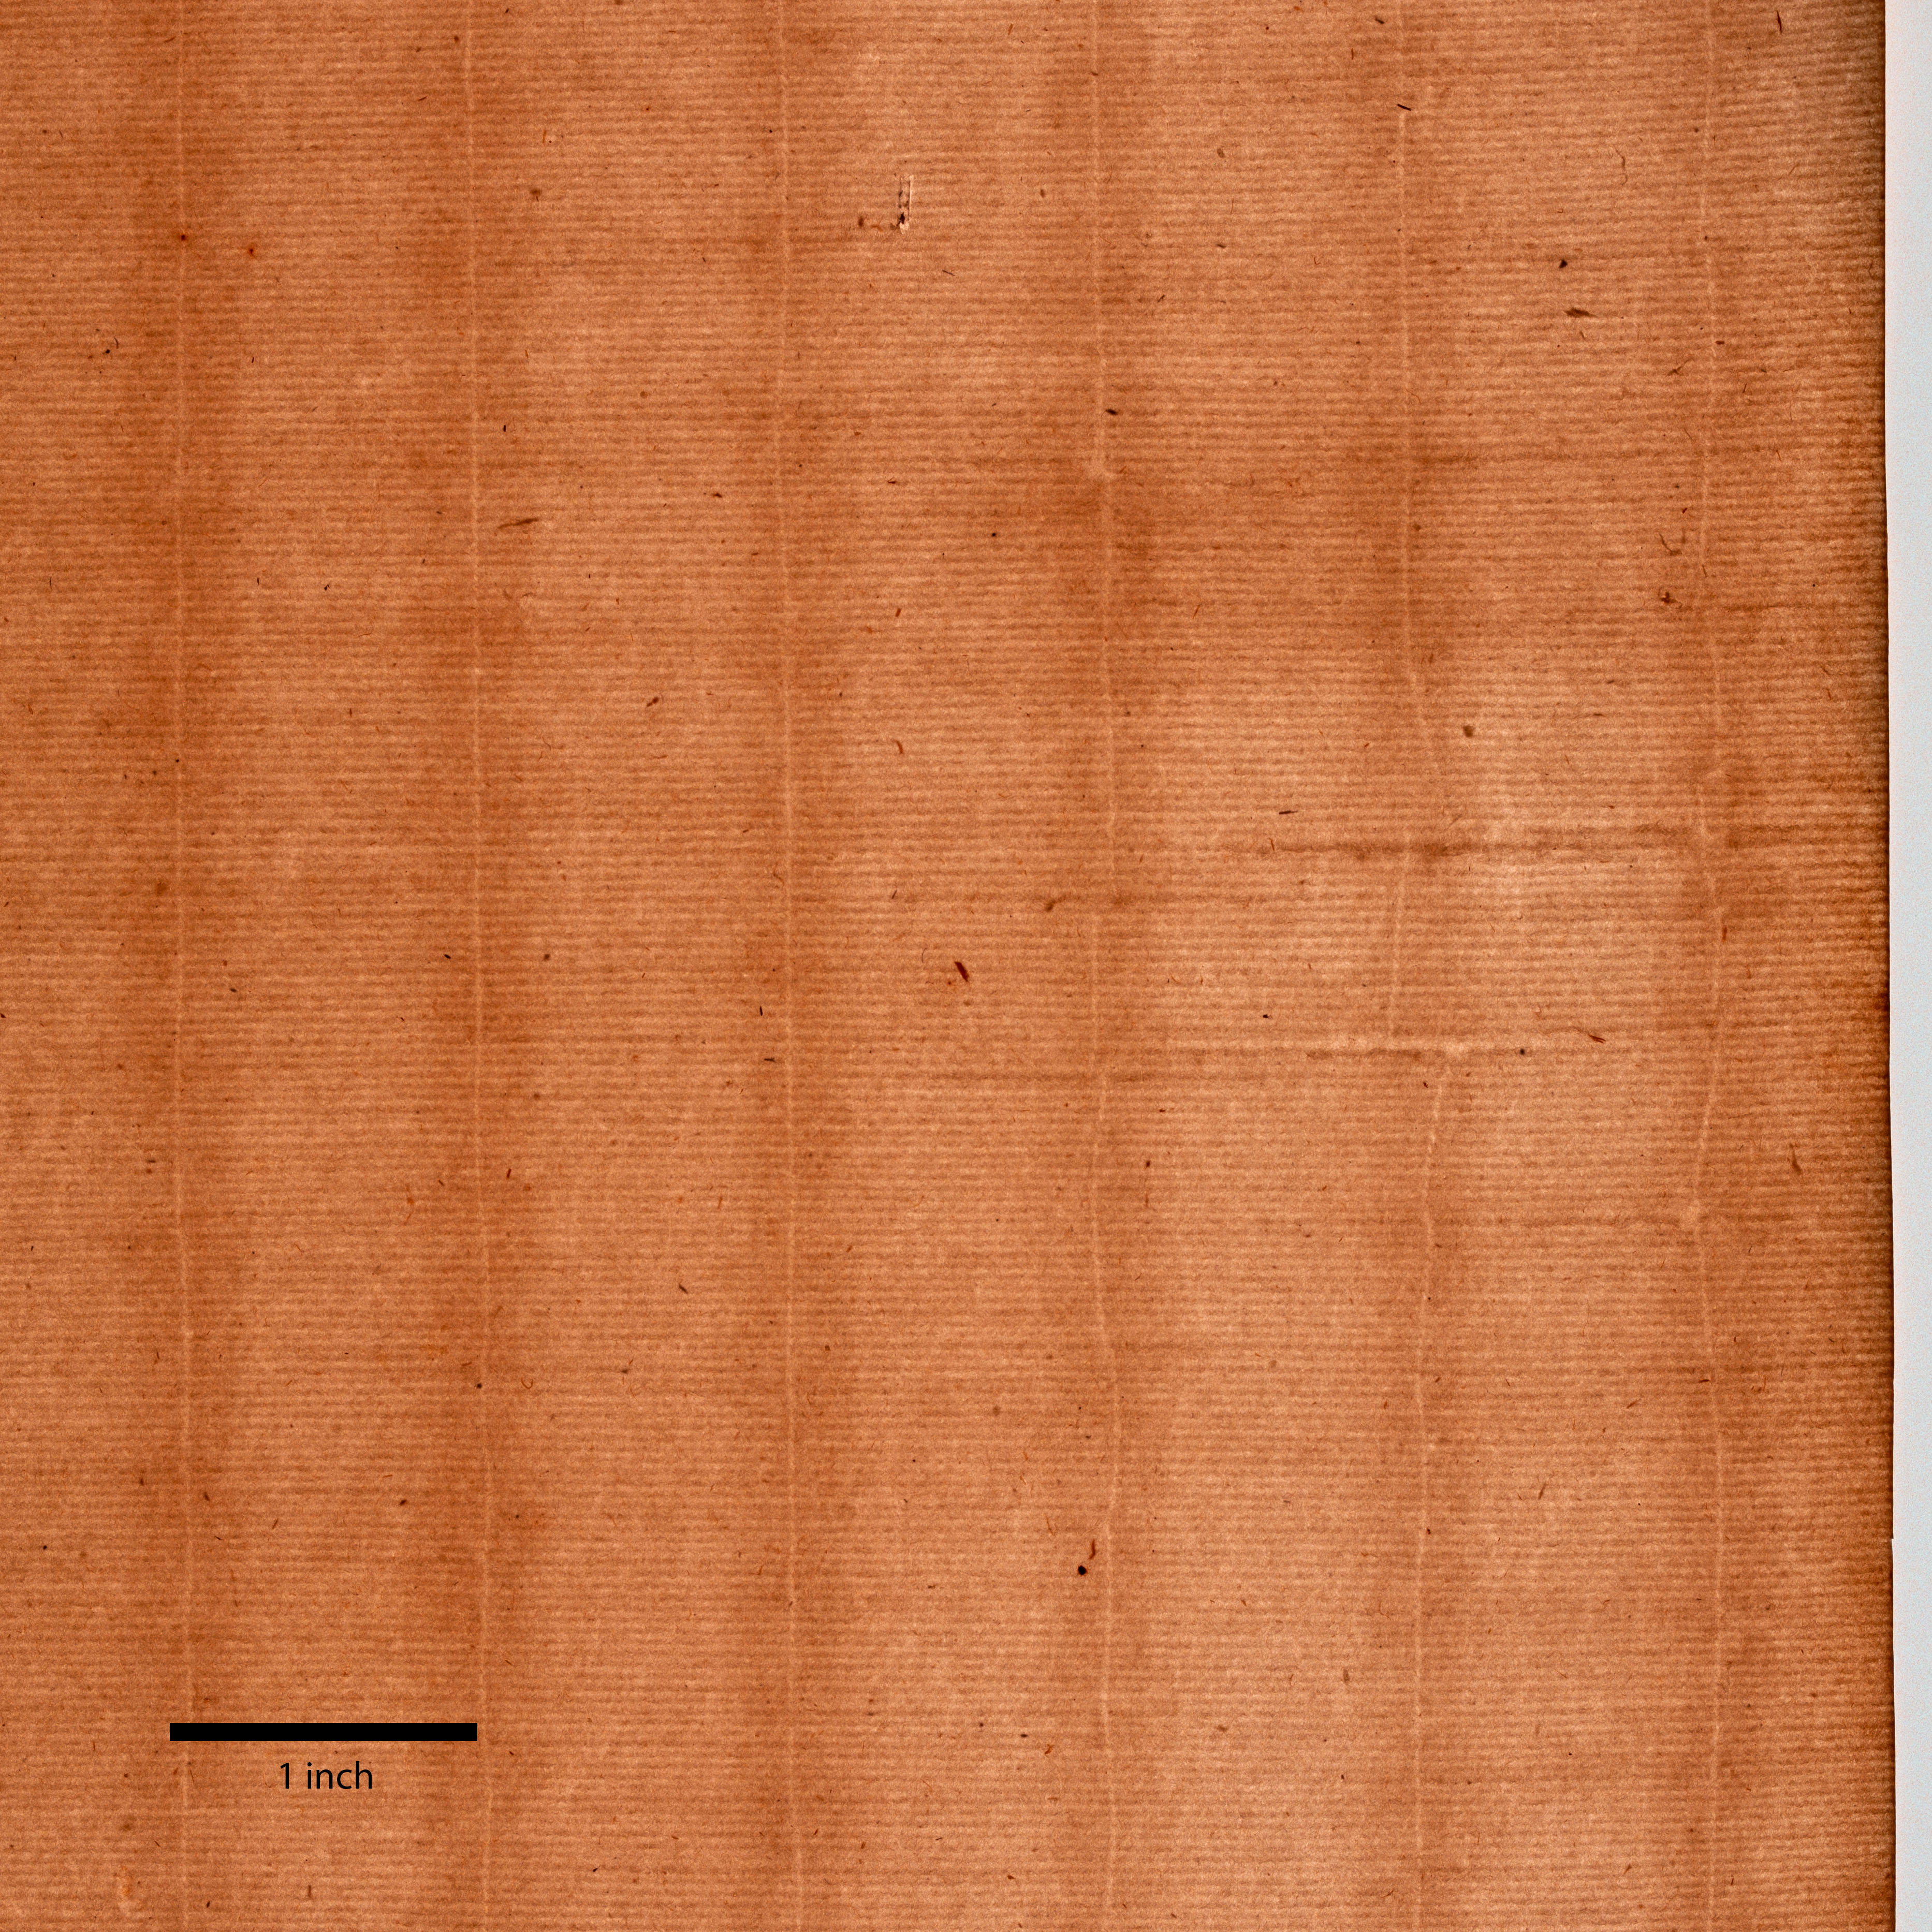 A piece of brown paper shows thin parallel horizontal lines and six vertical lines. In the top third of the paper, the horizontal lines are irregular. A thick black line marks one inch at bottom left.